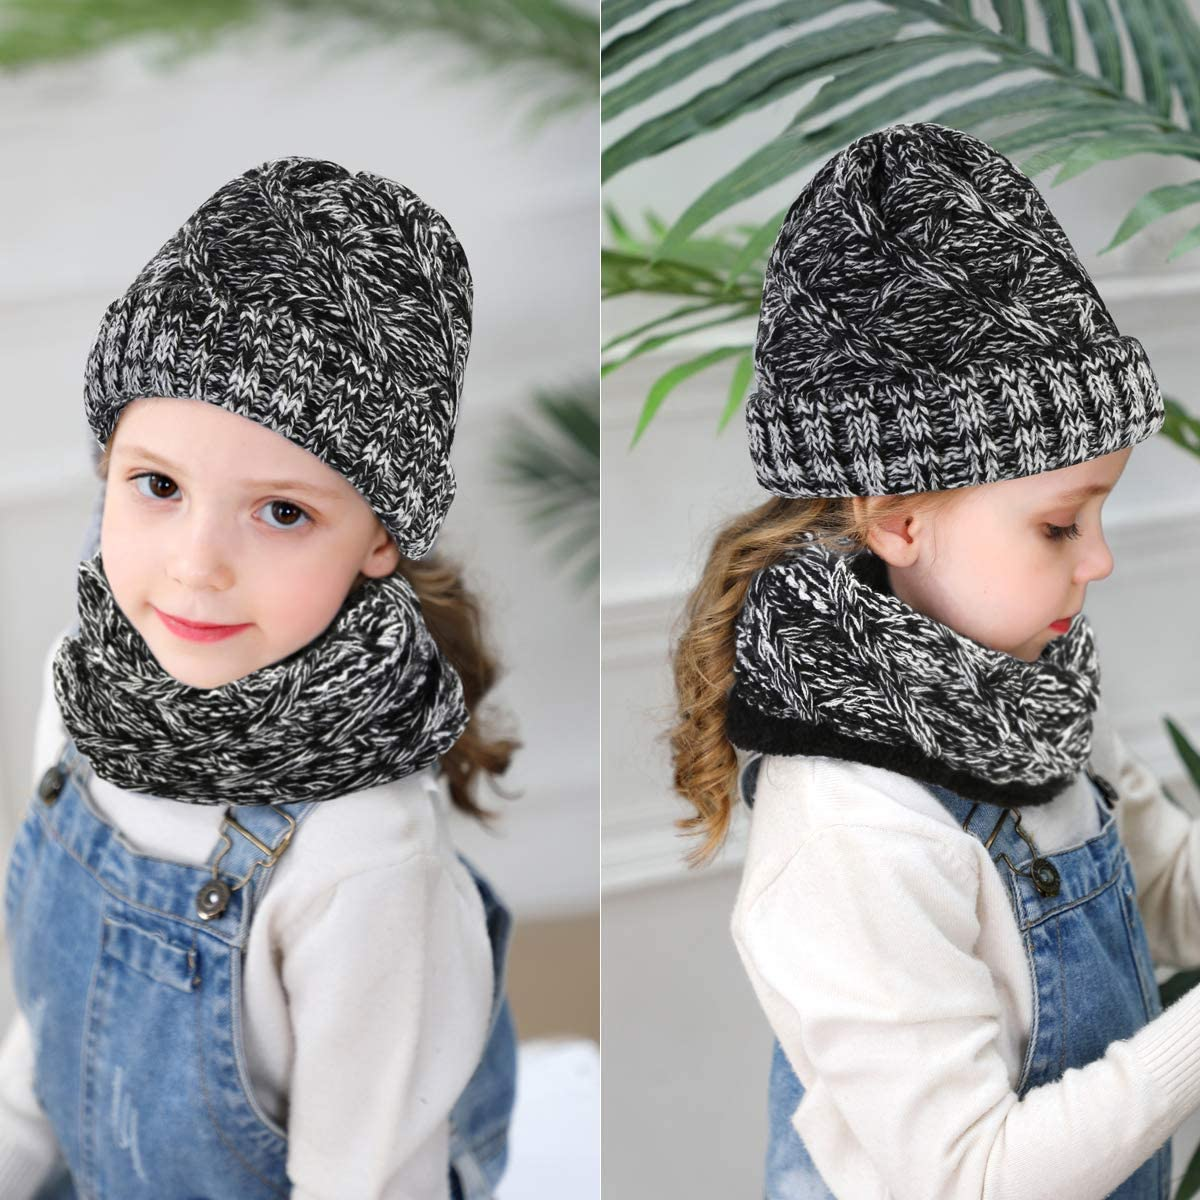 CheChury Kids Warm Knitted Beanie Hat and Circle Scarf Set Slouchy Warm Loop Scarf Neck Warmer Skull Cap Winter Sports Hat for Girls Boys Children